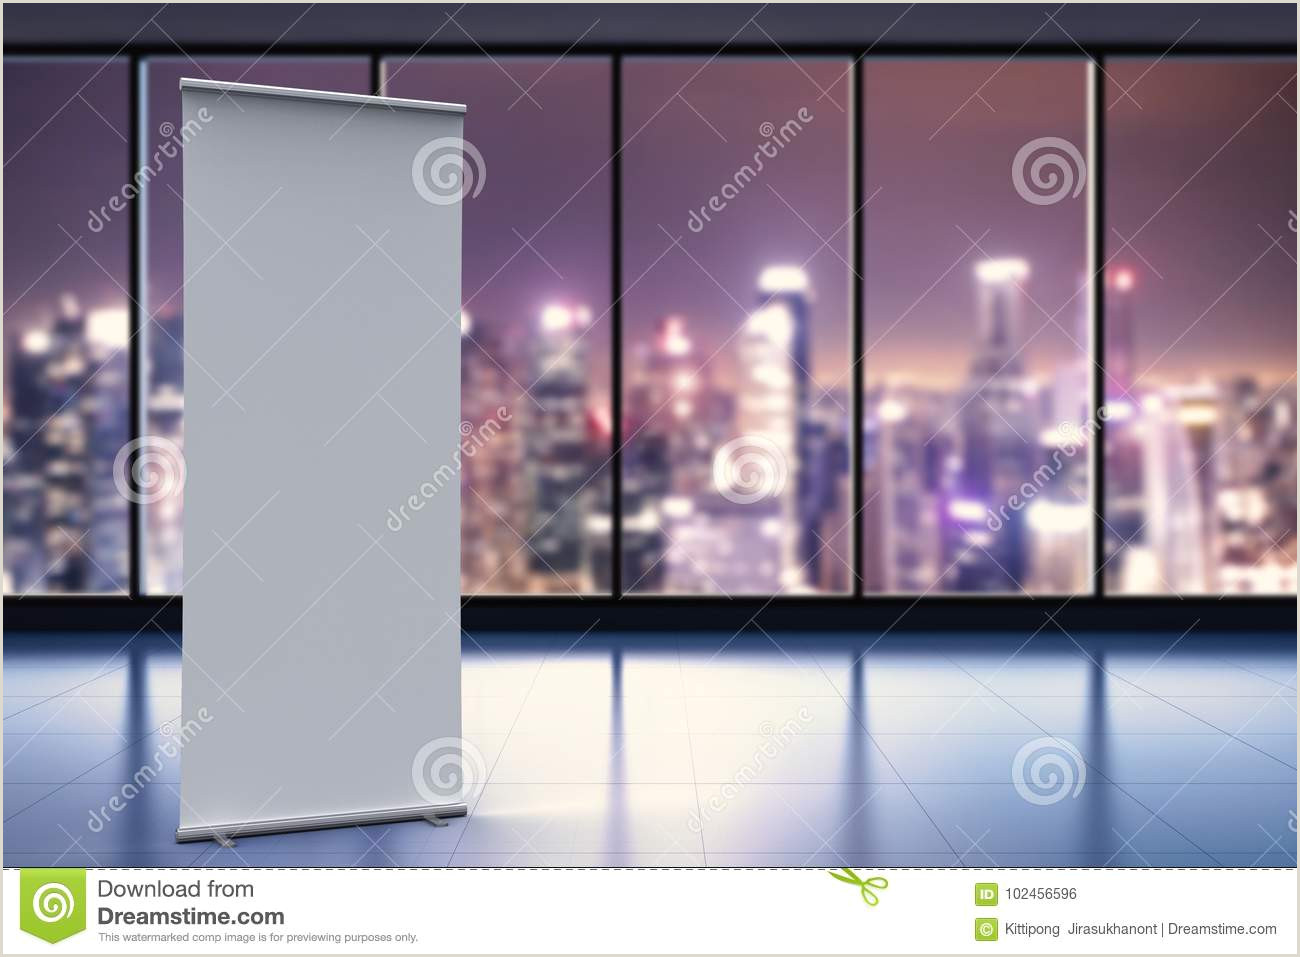 Pop Up Banner Images 495 Pop Up Banner S Free & Royalty Free Stock S